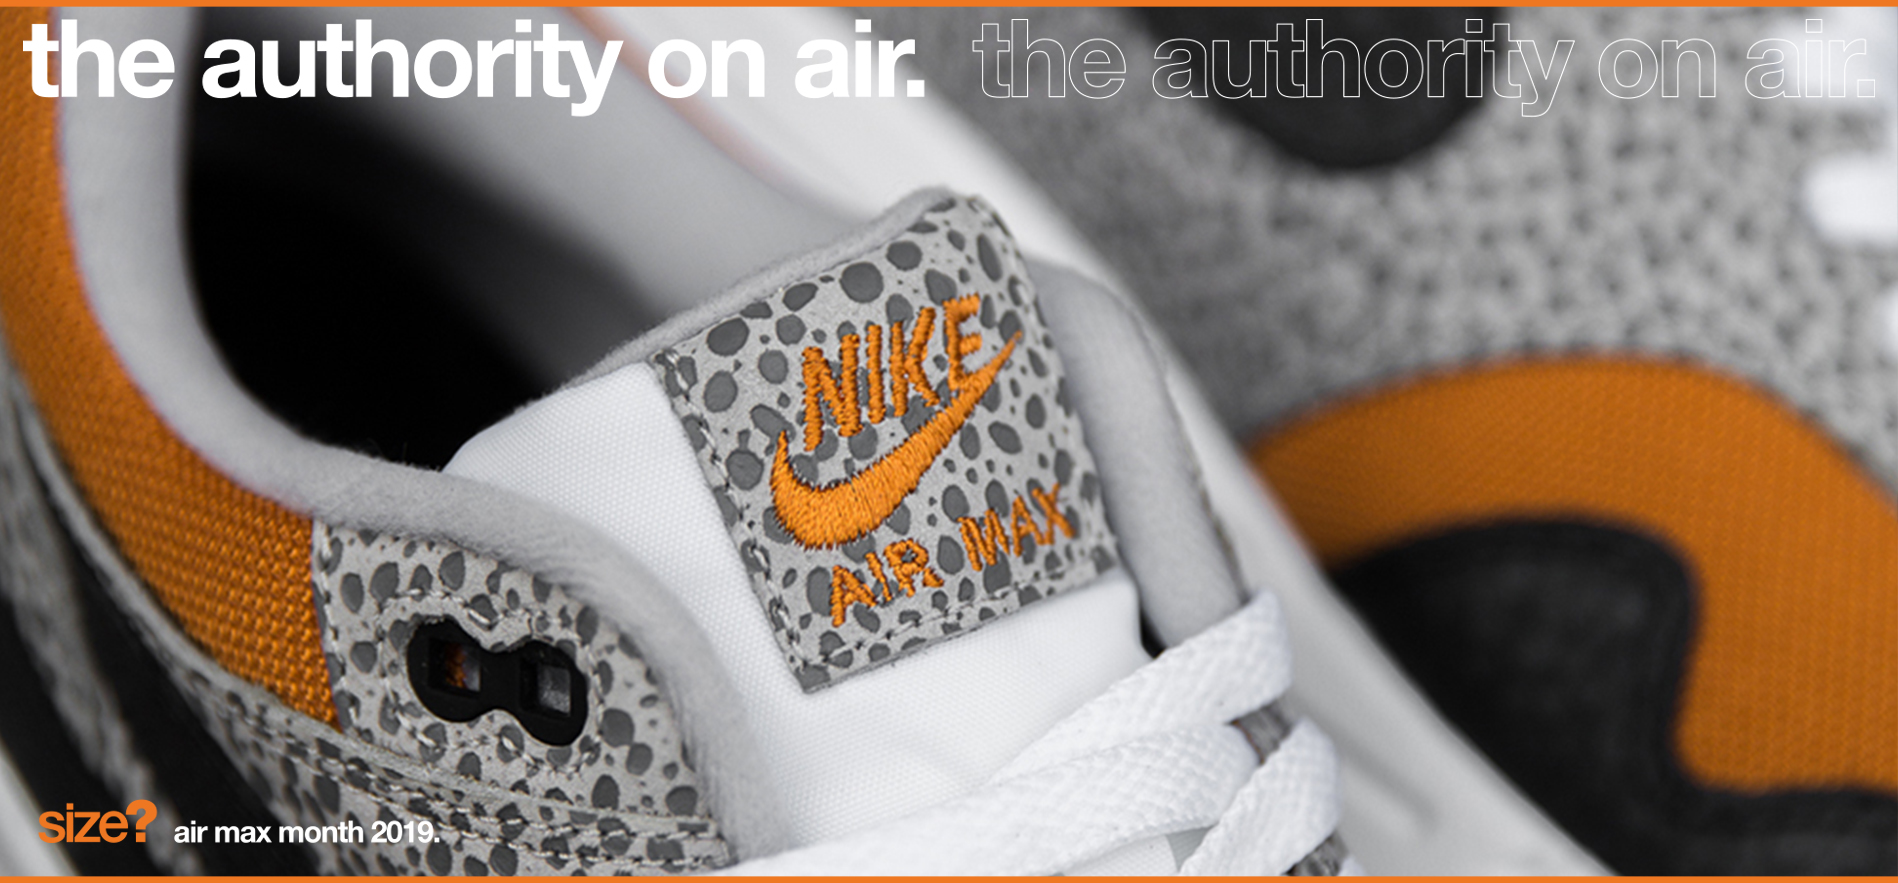 the authority on air: Air Max 1 & Air Max 95 'Safari' Pack